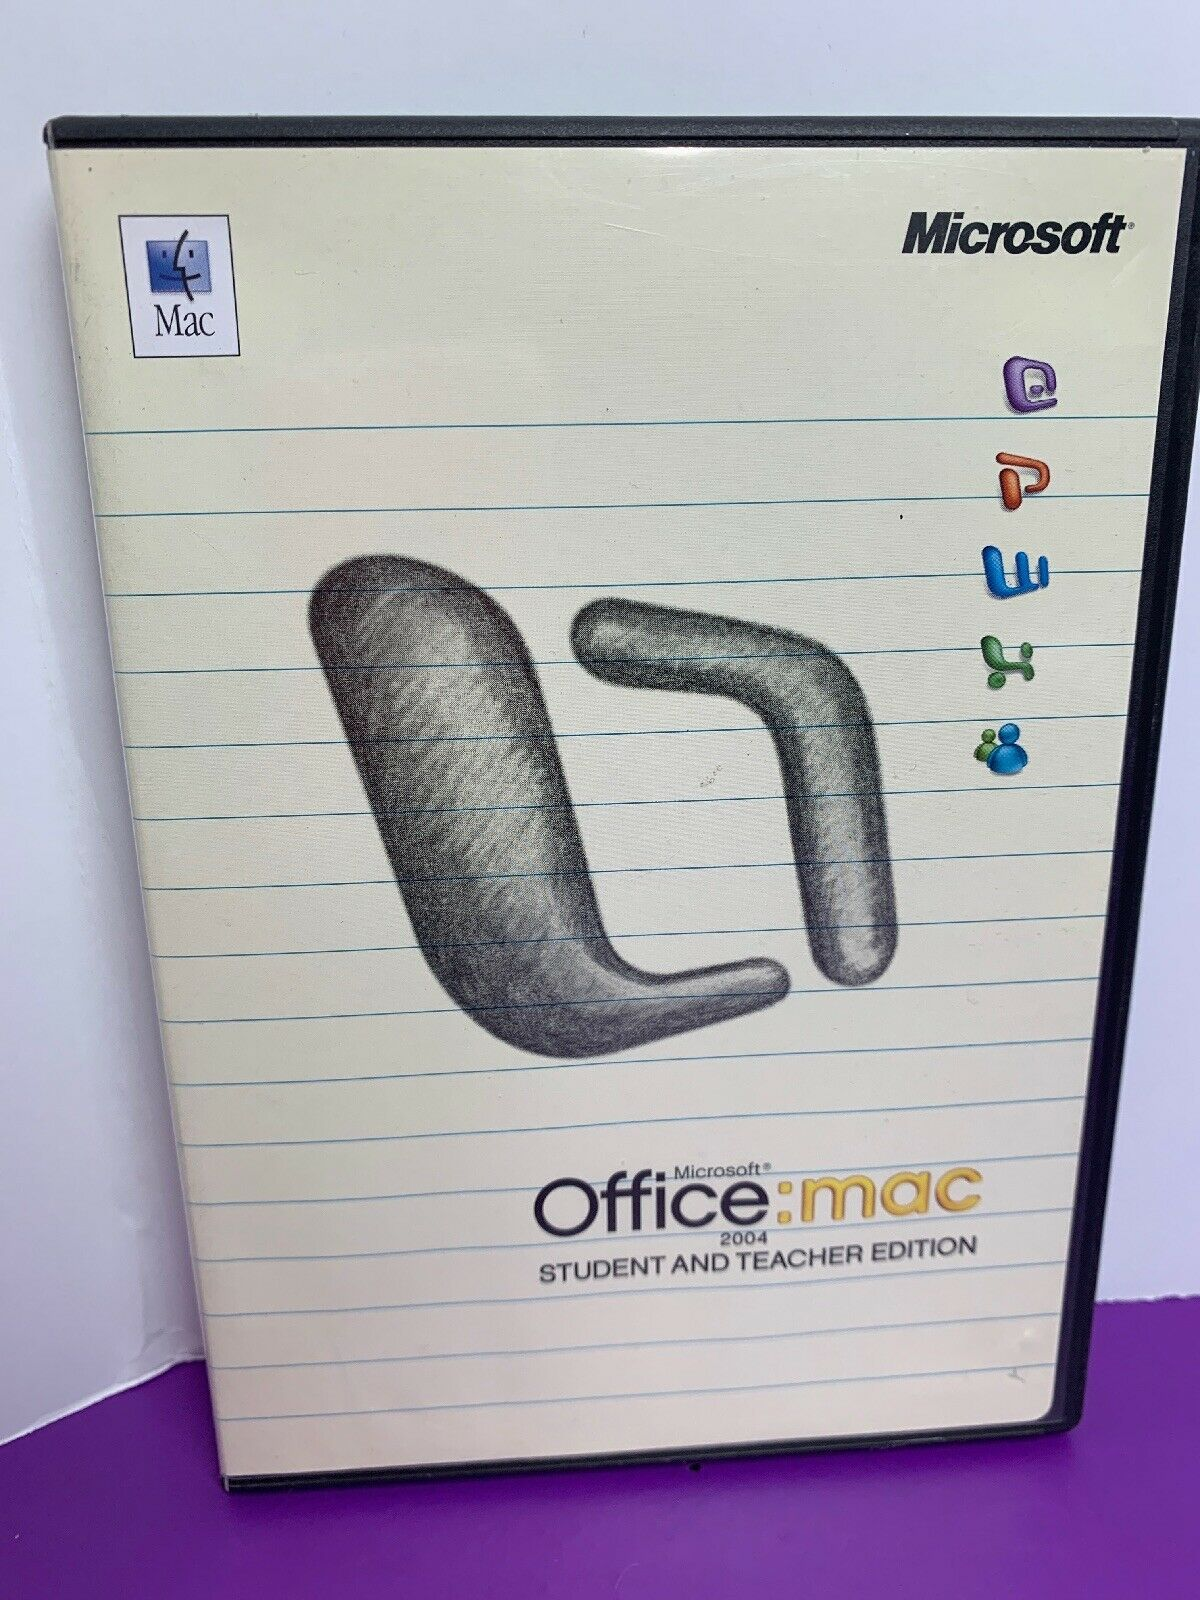 Microsoft Office 2004 Student & Teacher Edition (MAC) 3 User License for Mac